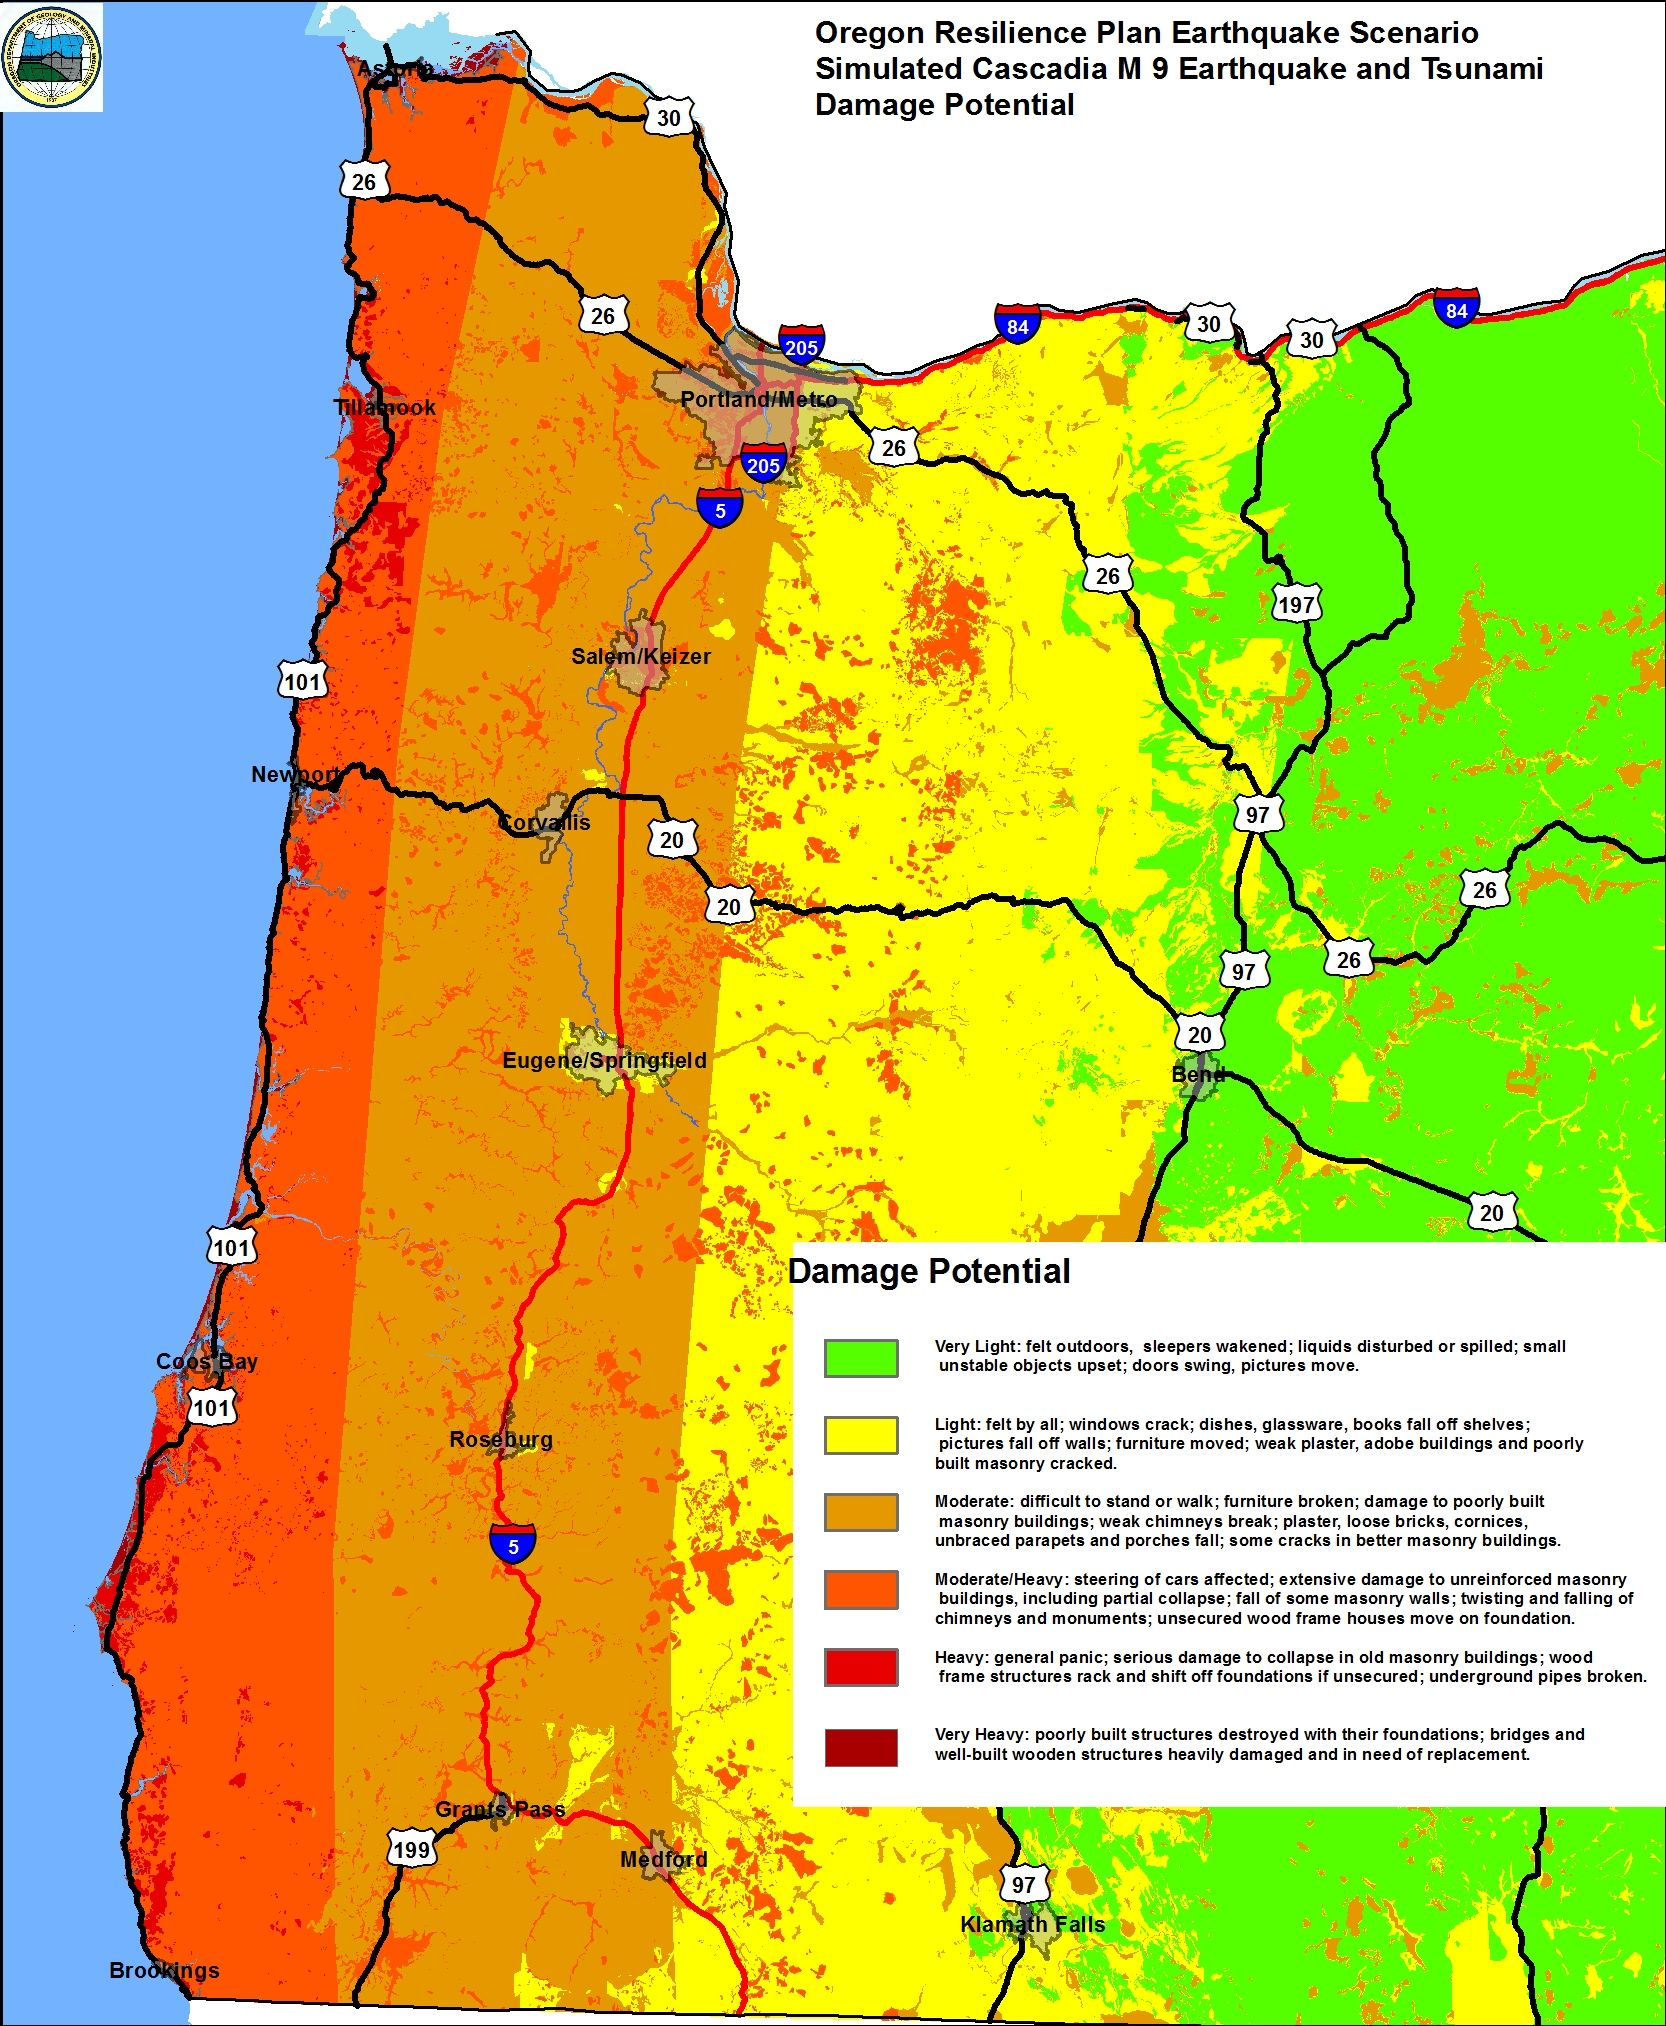 Damage potential map for magnitude 9 Cascadia Subduction Zone